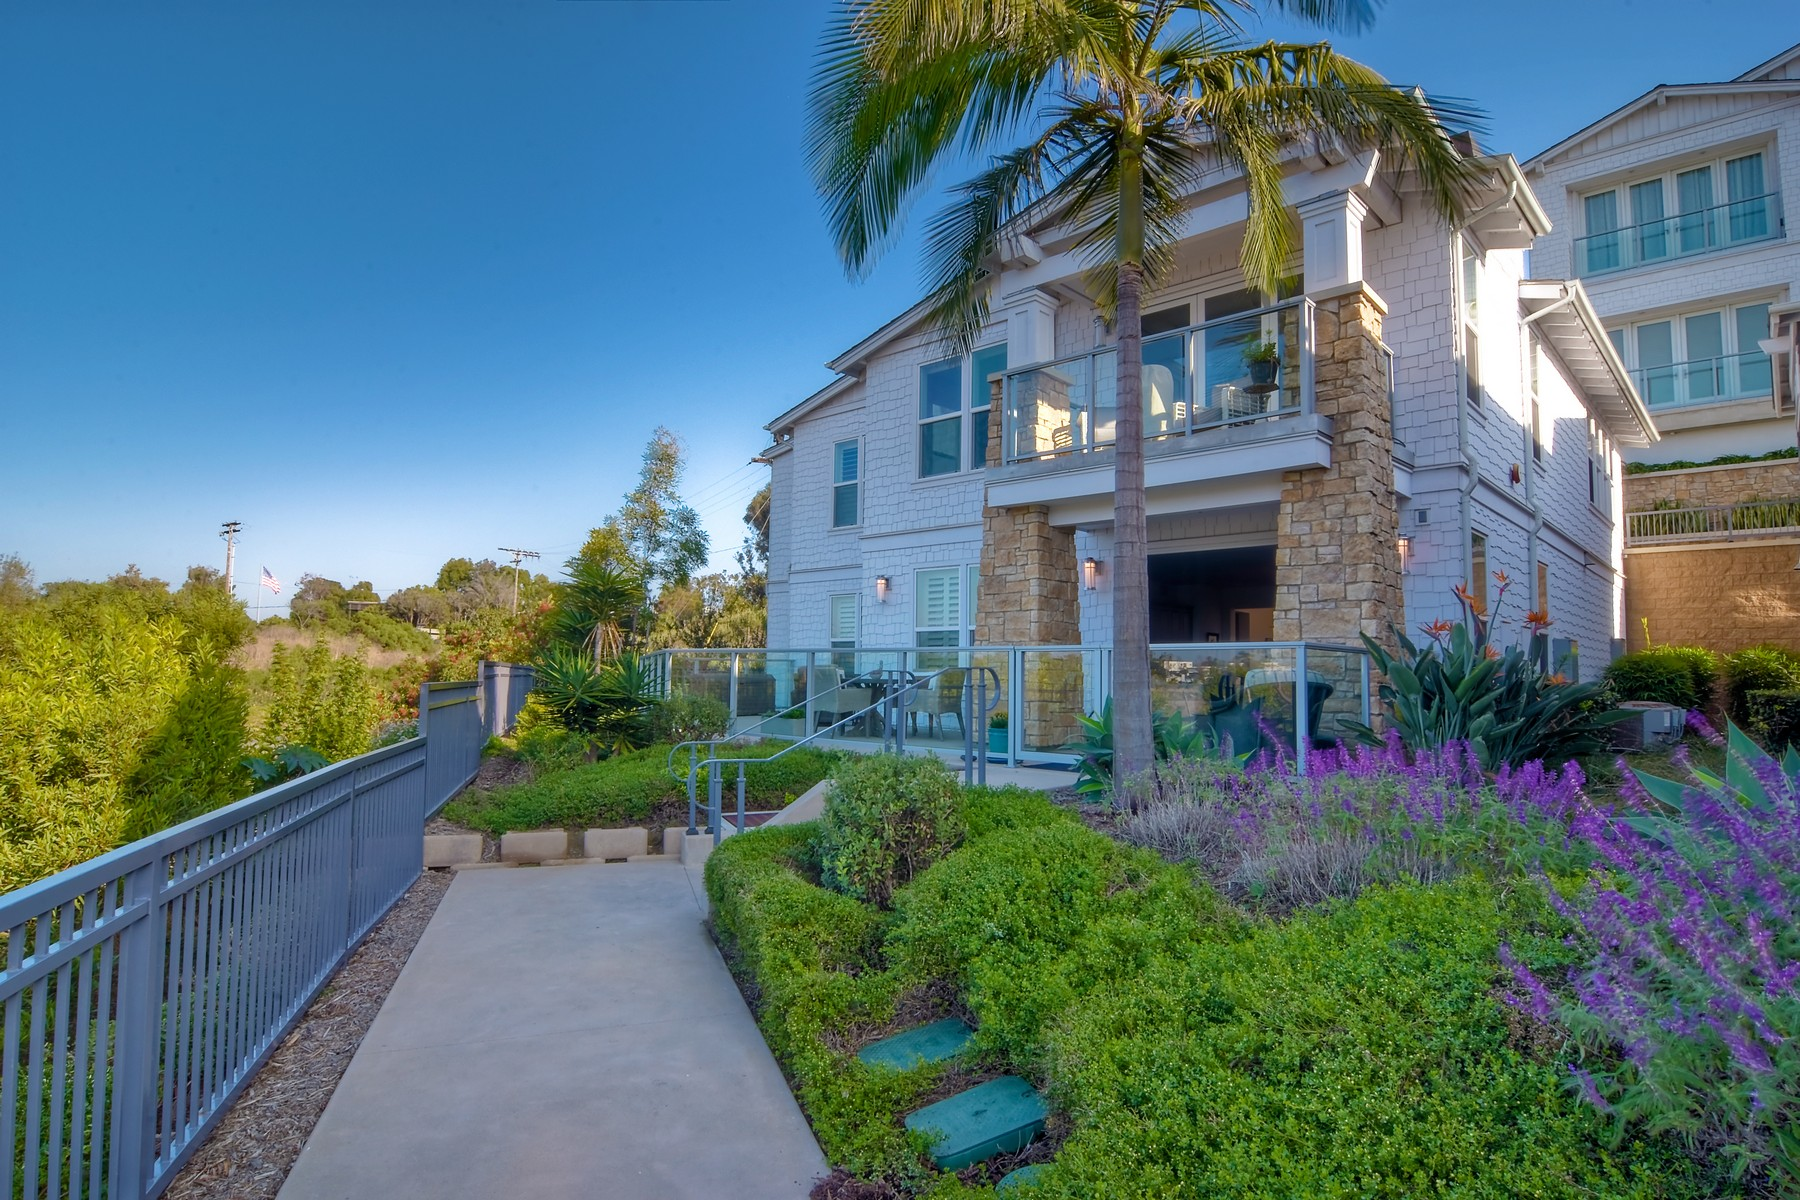 Single Family Homes for Sale at 2393 Ocean Street Carlsbad, California 92008 United States